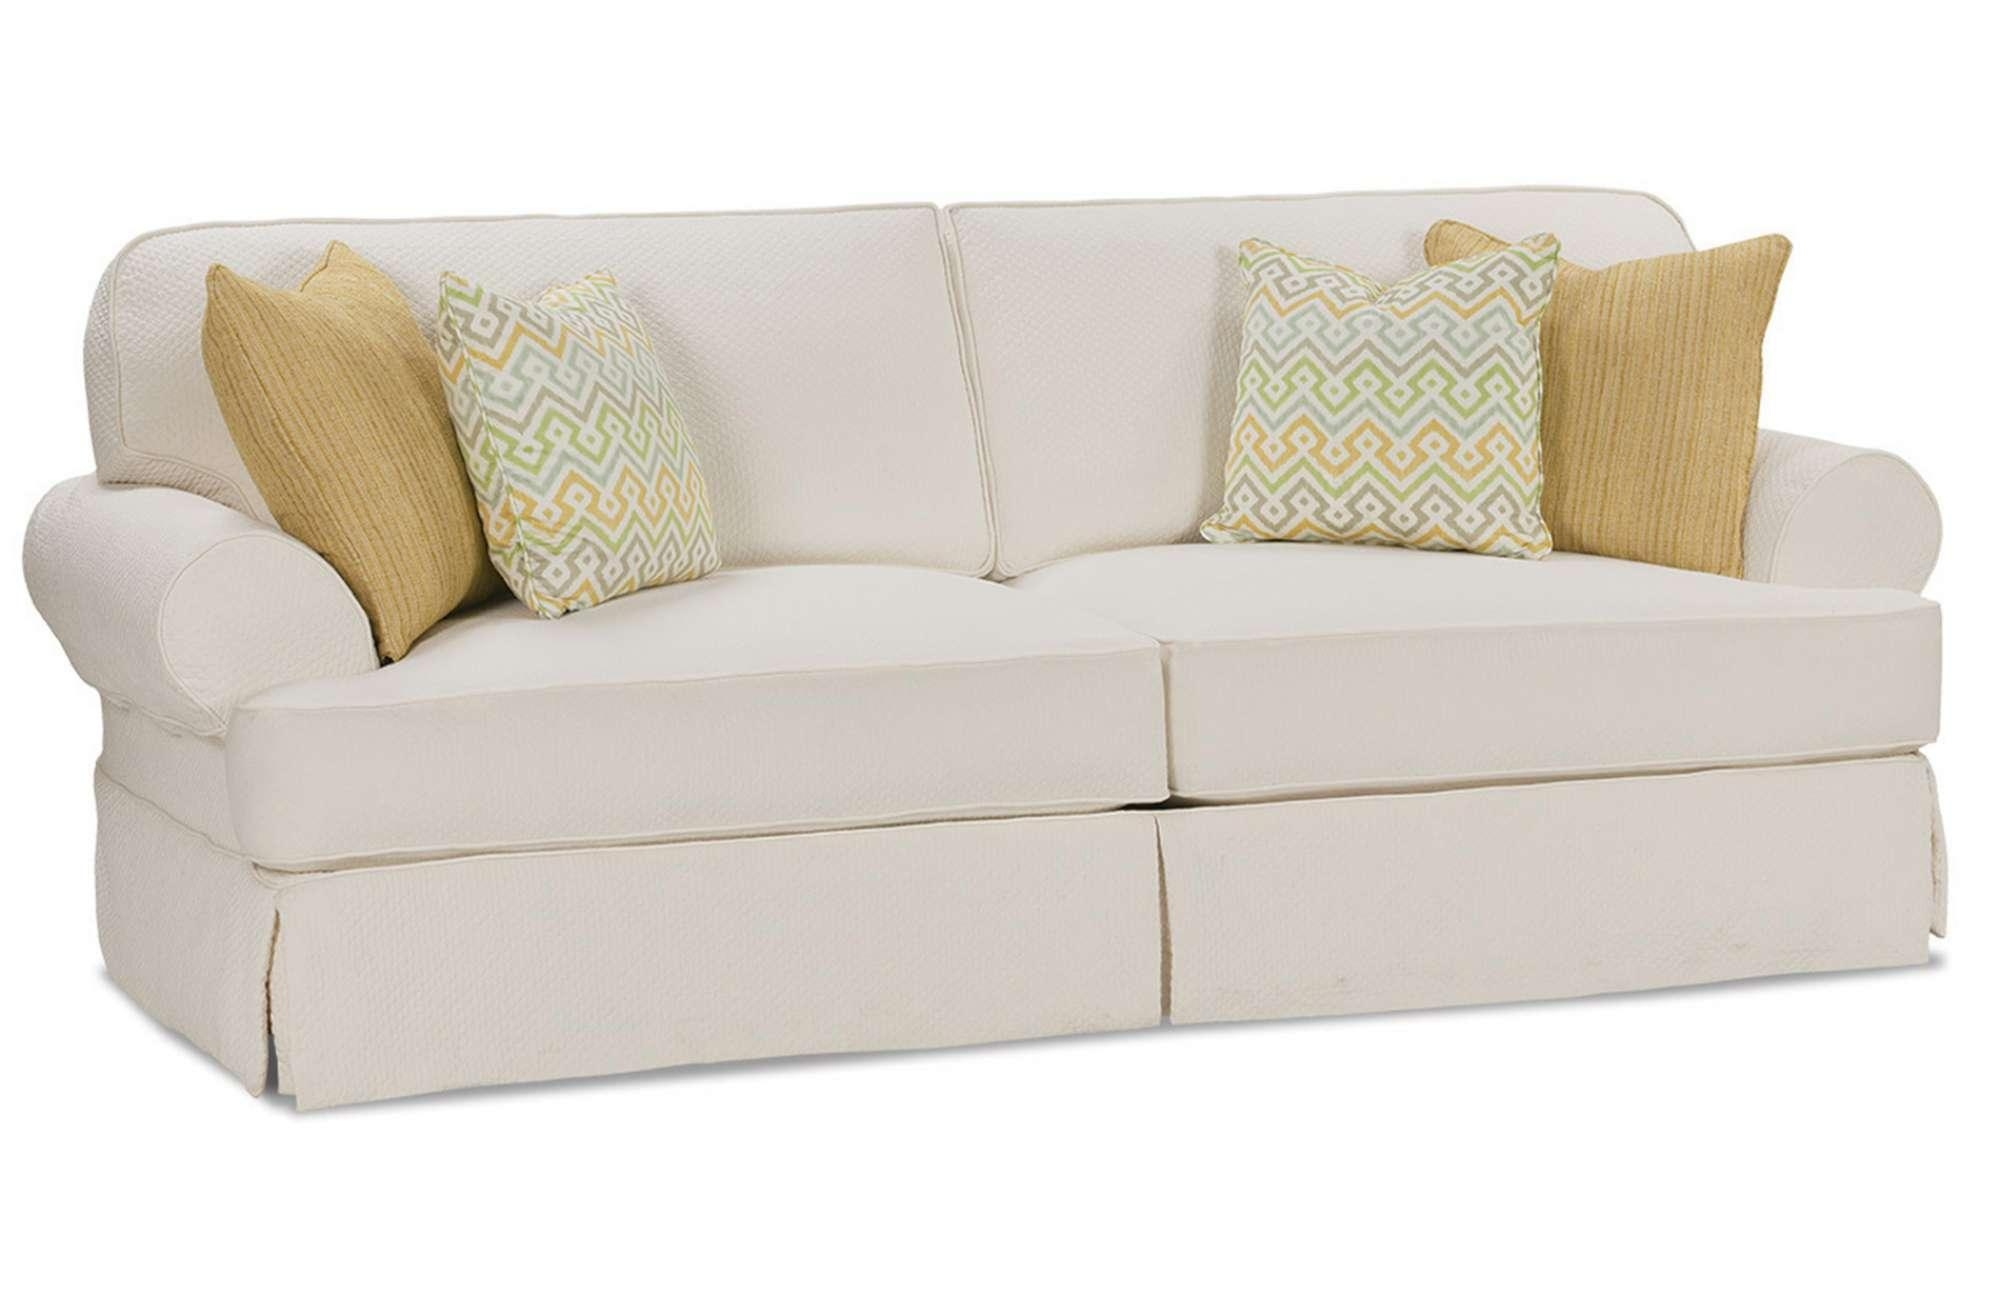 Furniture & Rug: Charming Rowe Furniture Slipcovers For Best With Slip Covers For Love Seats (Image 3 of 20)